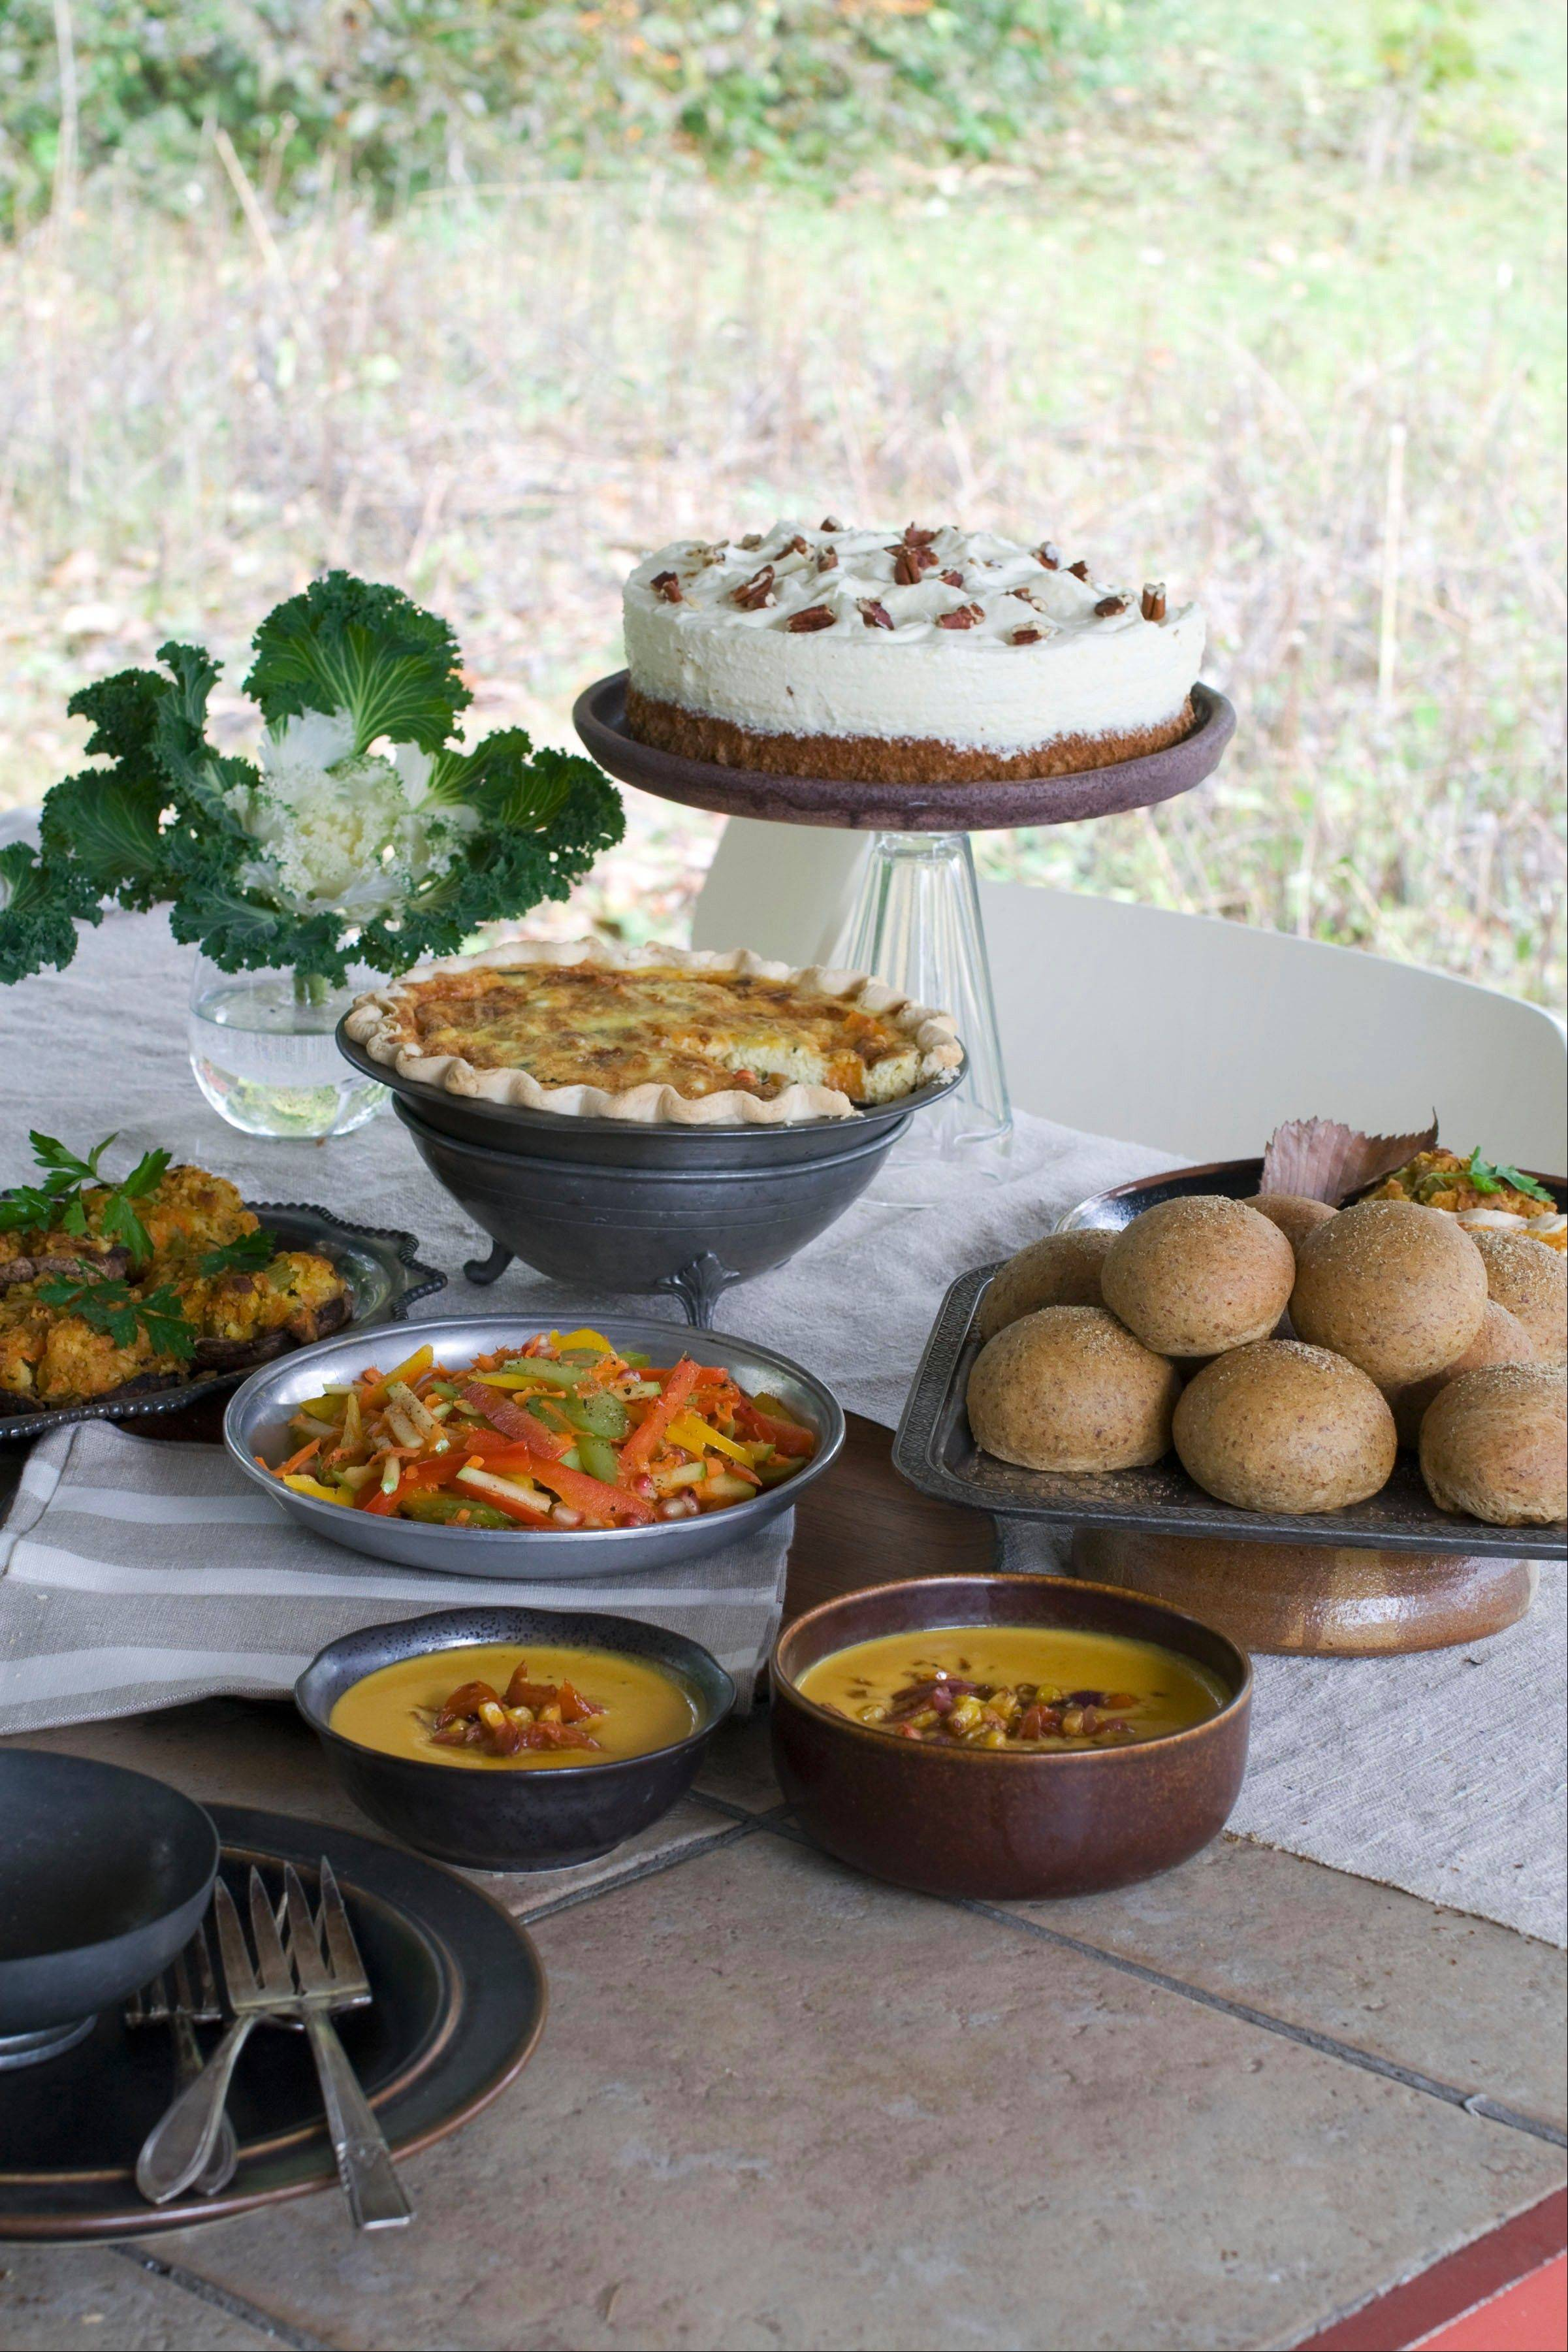 You won�t miss turkey with hearty fare like red bell pepper and apple slaw, flax rolls, roasted vegetable quiche, corn bread stuffing mushrooms and squash bisque and lemon pecan mousse cake on the Thanksgiving table.